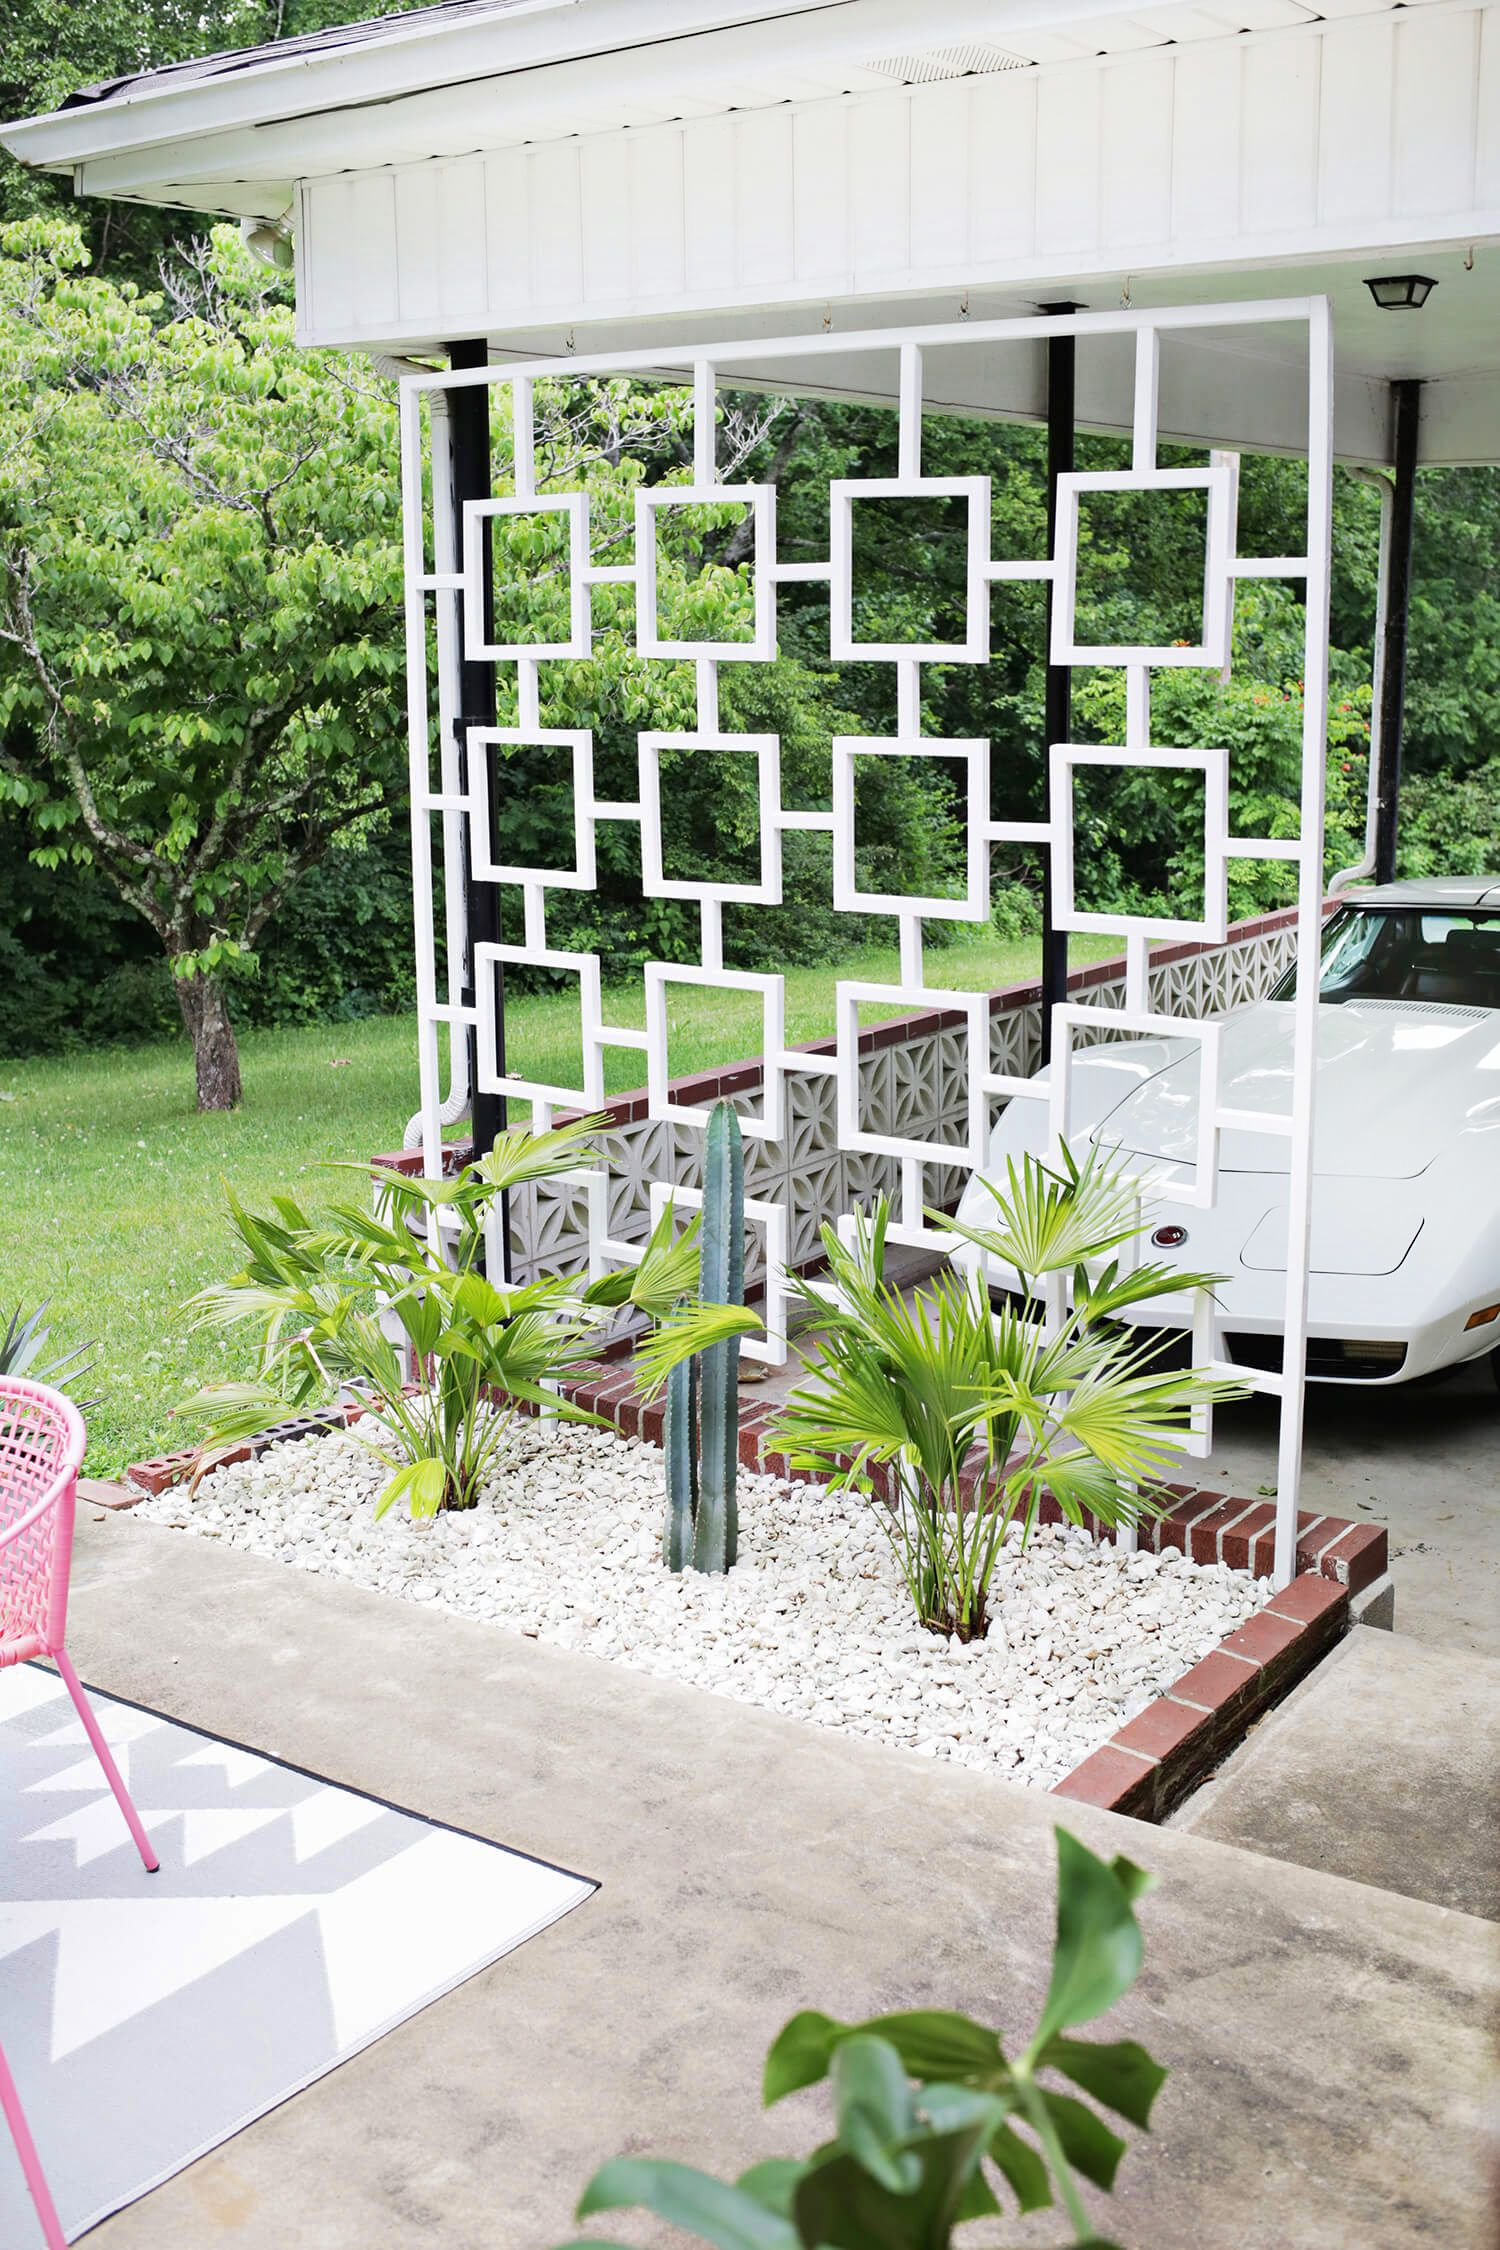 40 DIY Homemade Structures to Plant Vines: Trellis, Arbor, Pergola Contemporary Garden Wood Trellis Designs on wood trellis patterns, wood trellis kits, wood bed frames designs, custom wood trellis designs, wood stacking designs, wood outdoor furniture designs, wood arbor plans, wood garden art, wood for trellis, wood screws designs, wood garden gates, wood trellis designs ideas, wood trellis overhead, wood trellis design plans, wood garden wall trellis, wood trellis details, wood smokehouse designs, wood garden trellis plans, wood trellis fence plans, wood rose trellis,